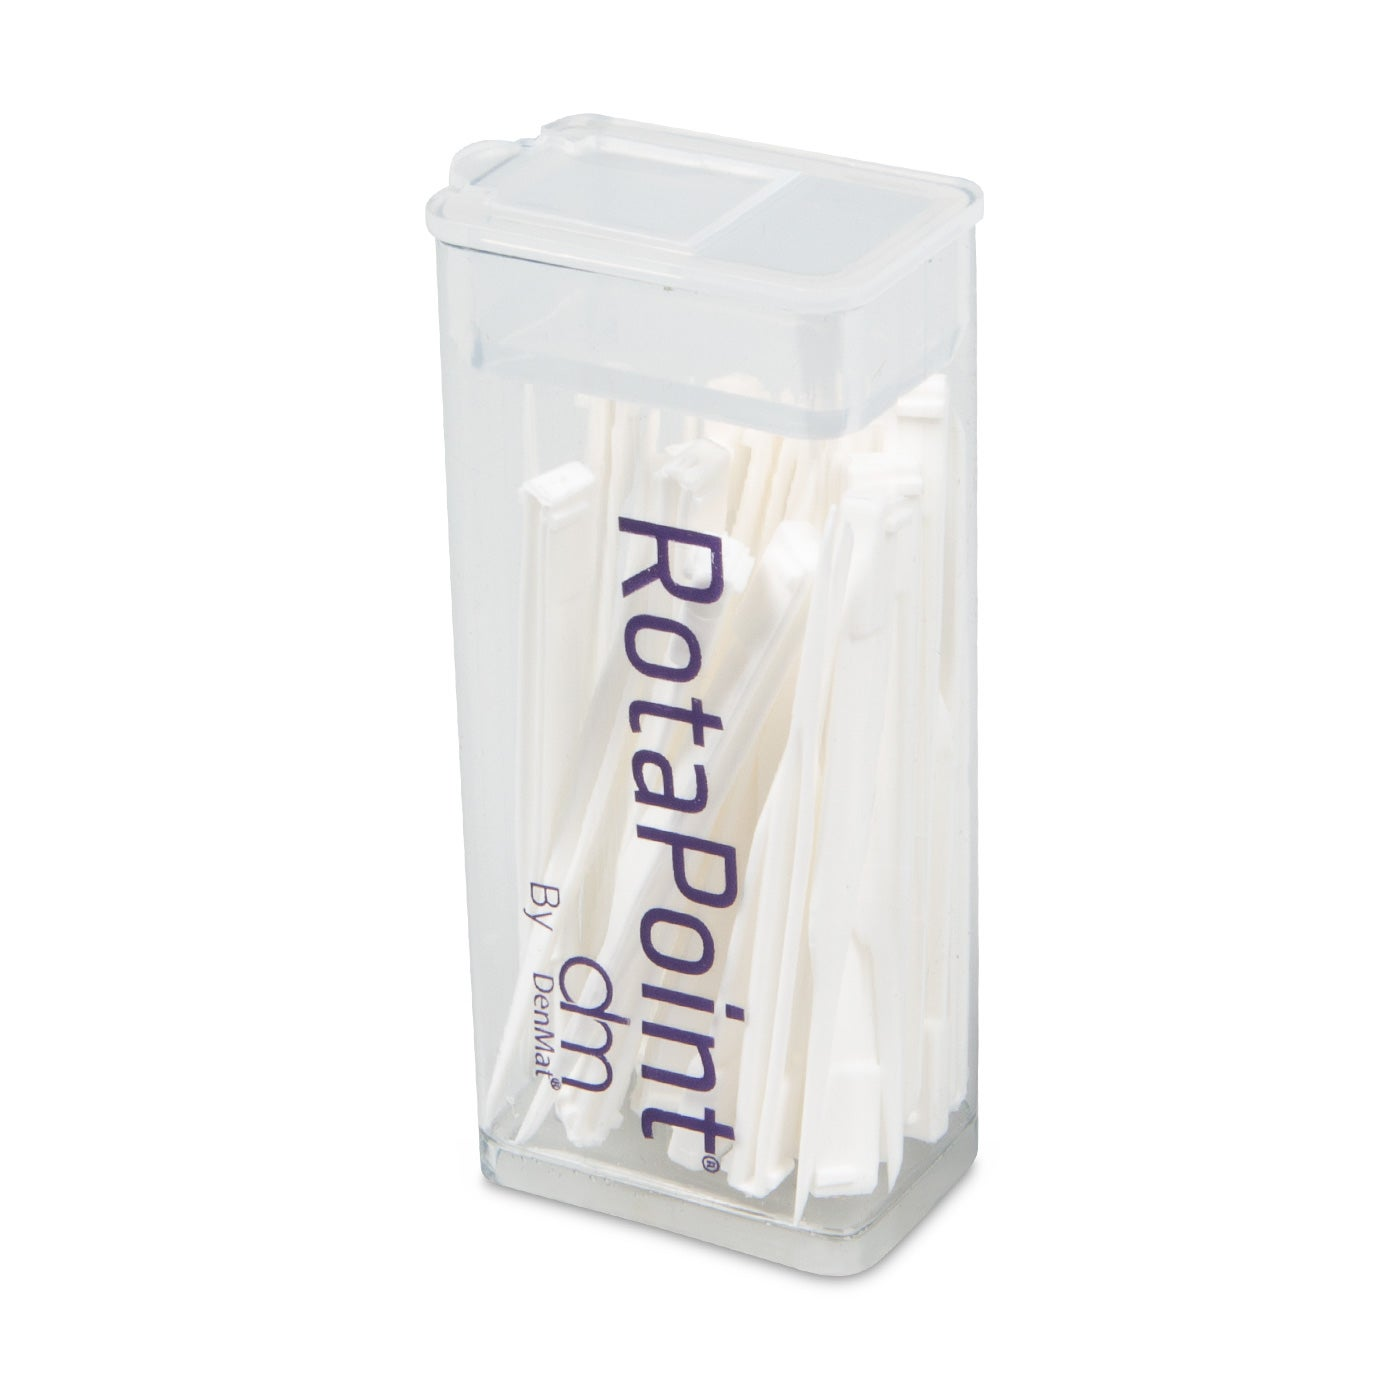 Interdental Picks - RotaPoints Interdental Cleaning Device